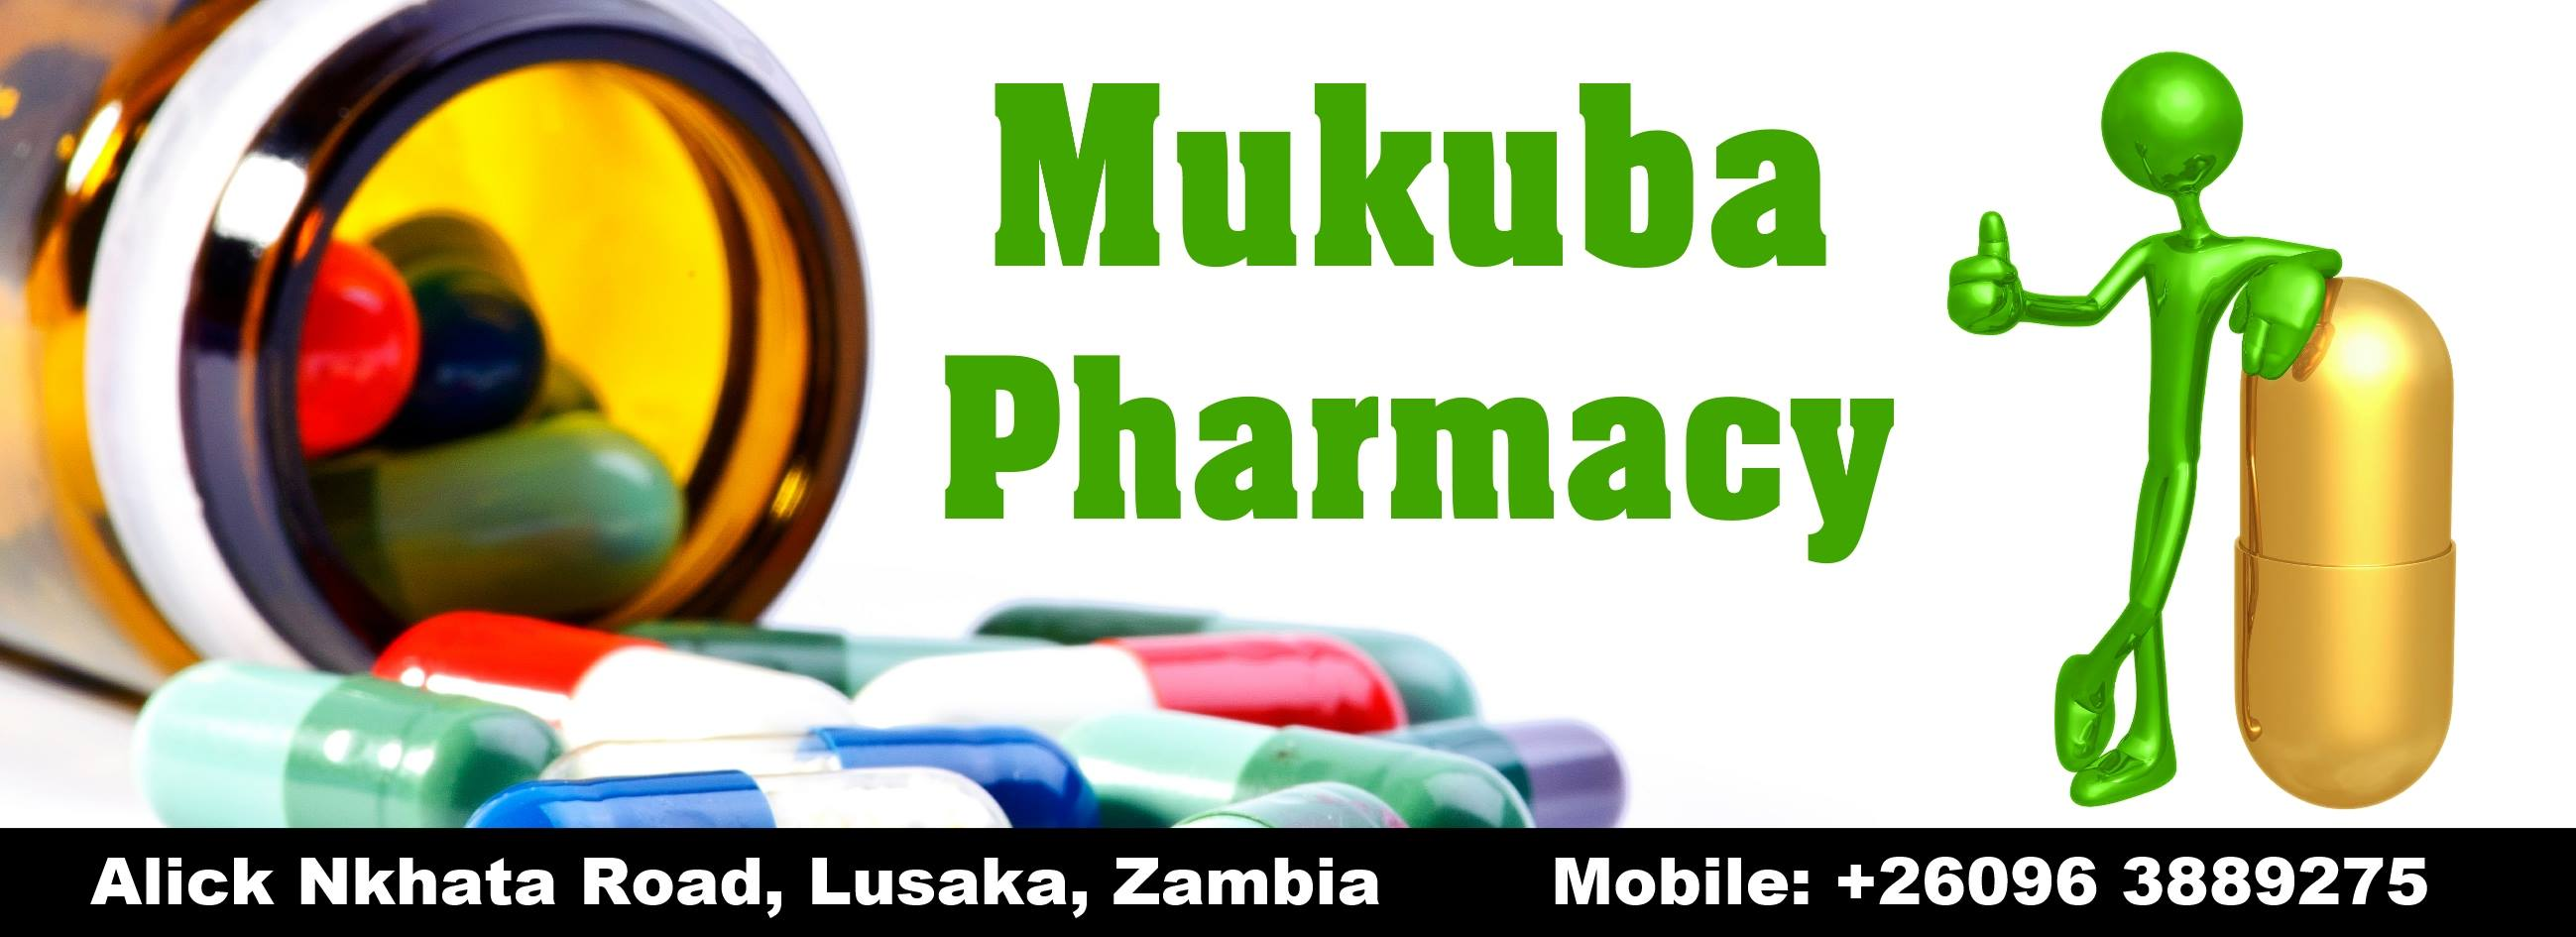 Mukuba Pharmacy